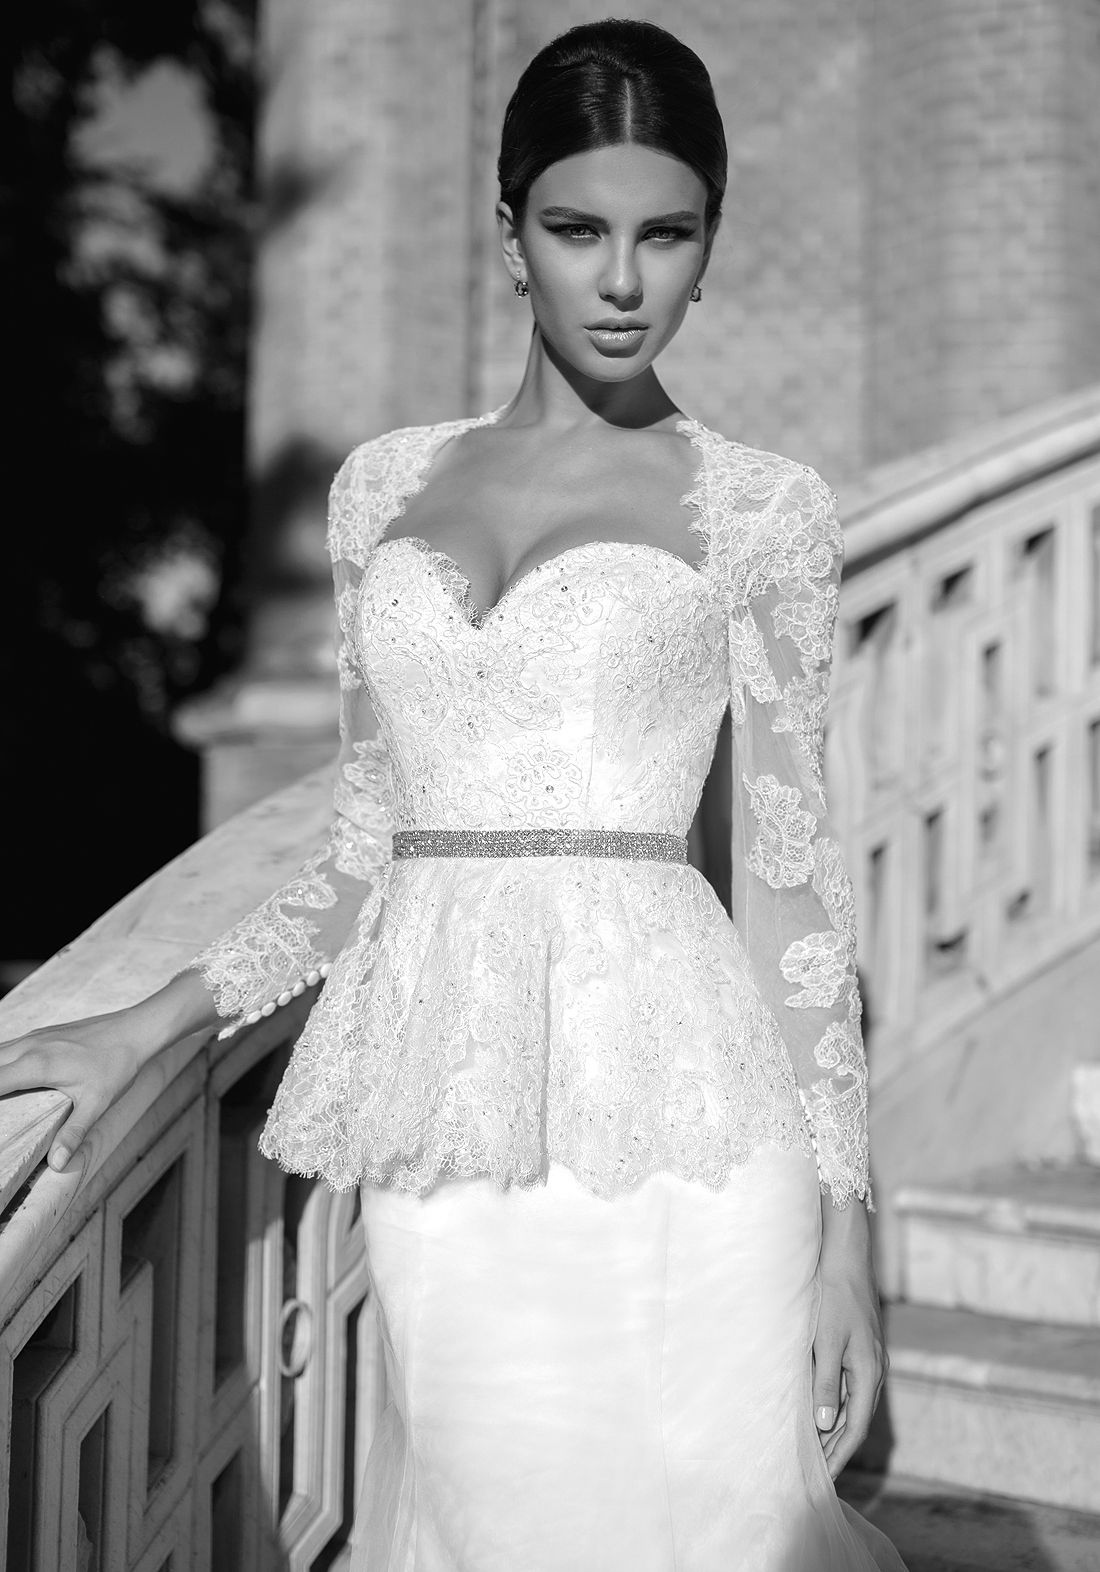 heart shaped wedding dress ISABEL sensual open back mermaid wedding dress with lace peplum crystals around the